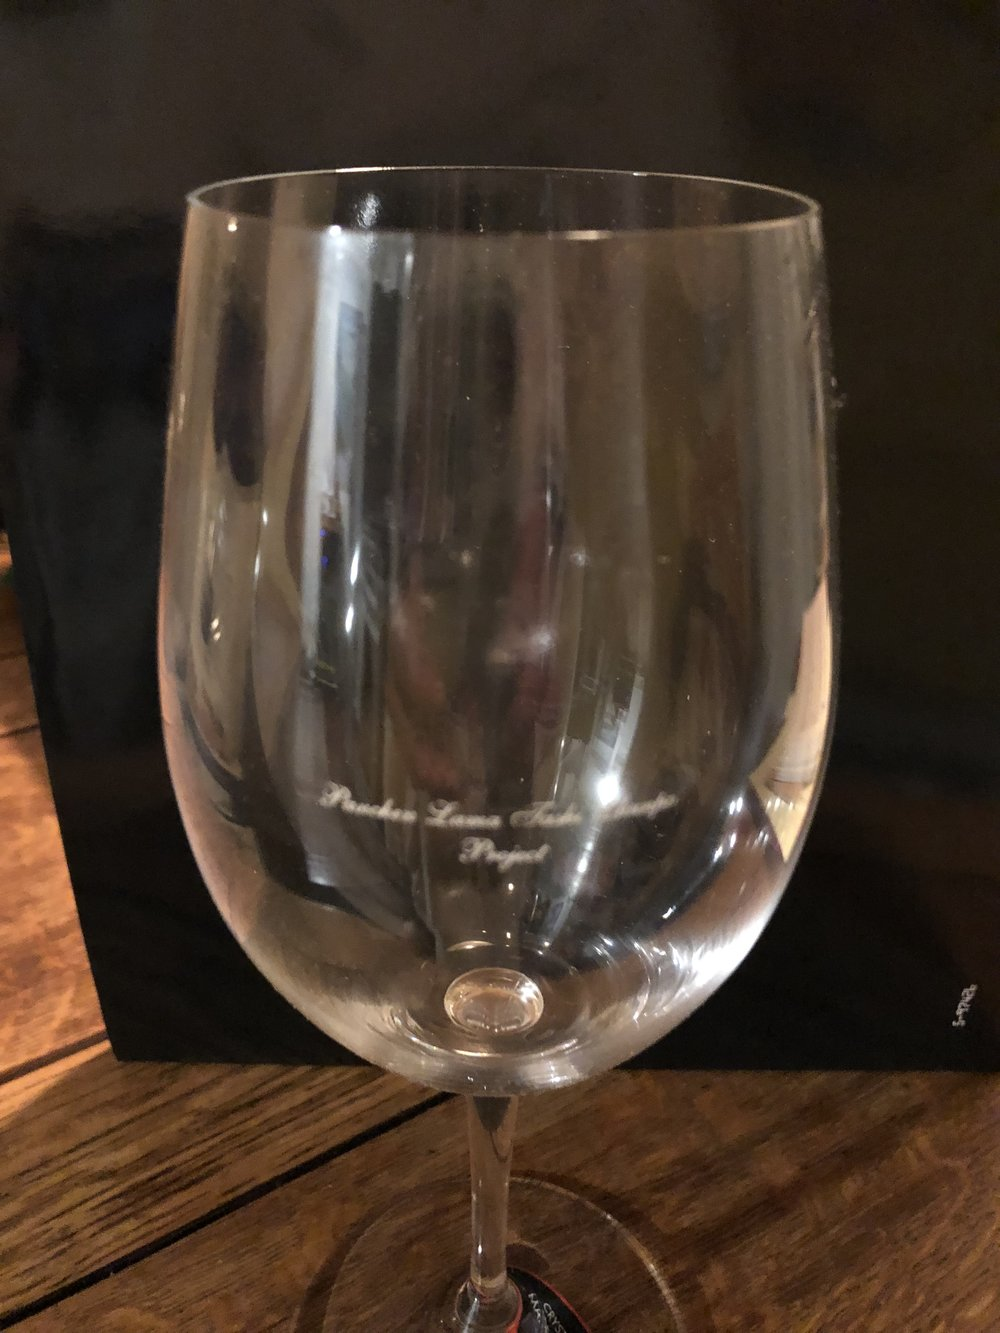 PLTLP wine glasses